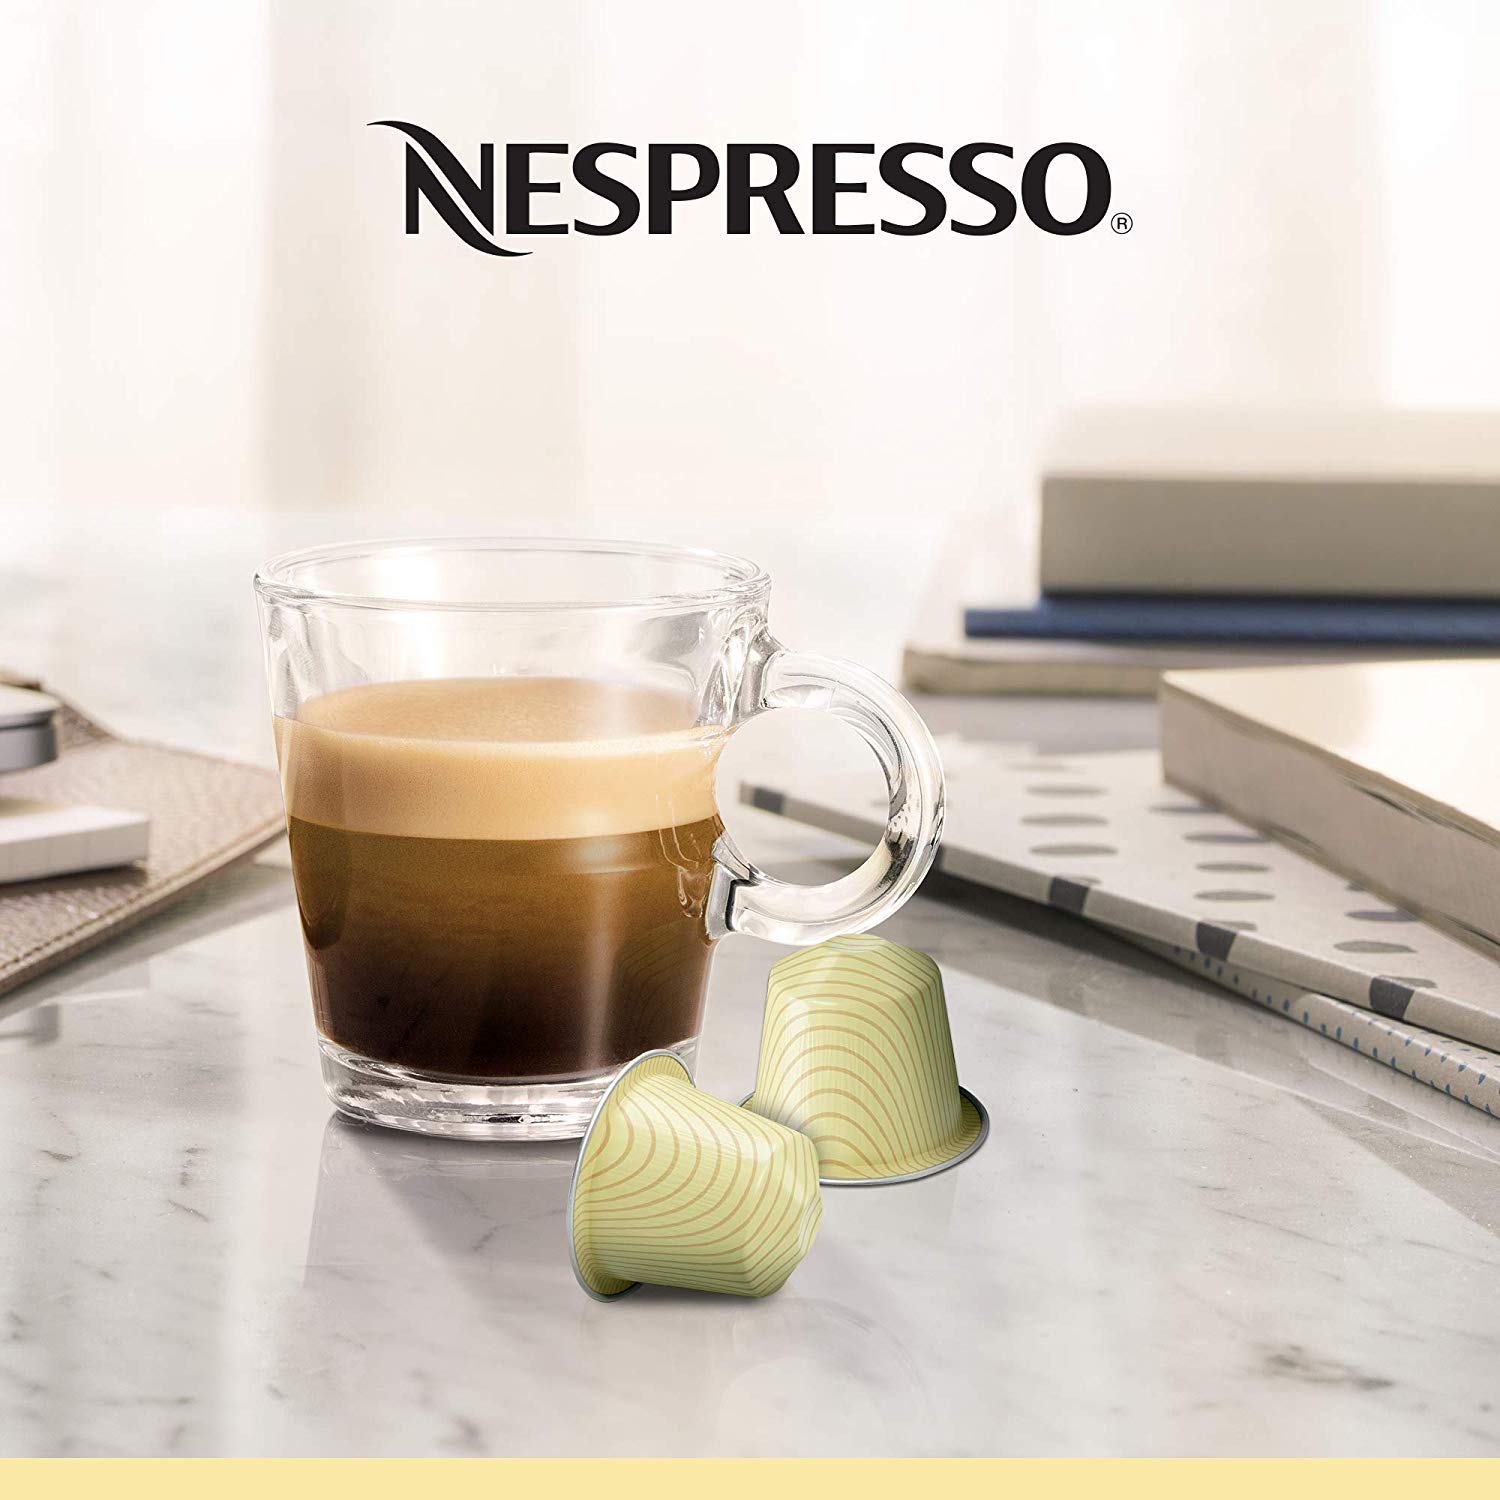 In this image you can see a glass of Vanilio coffee and accompanied with two coffee capsules